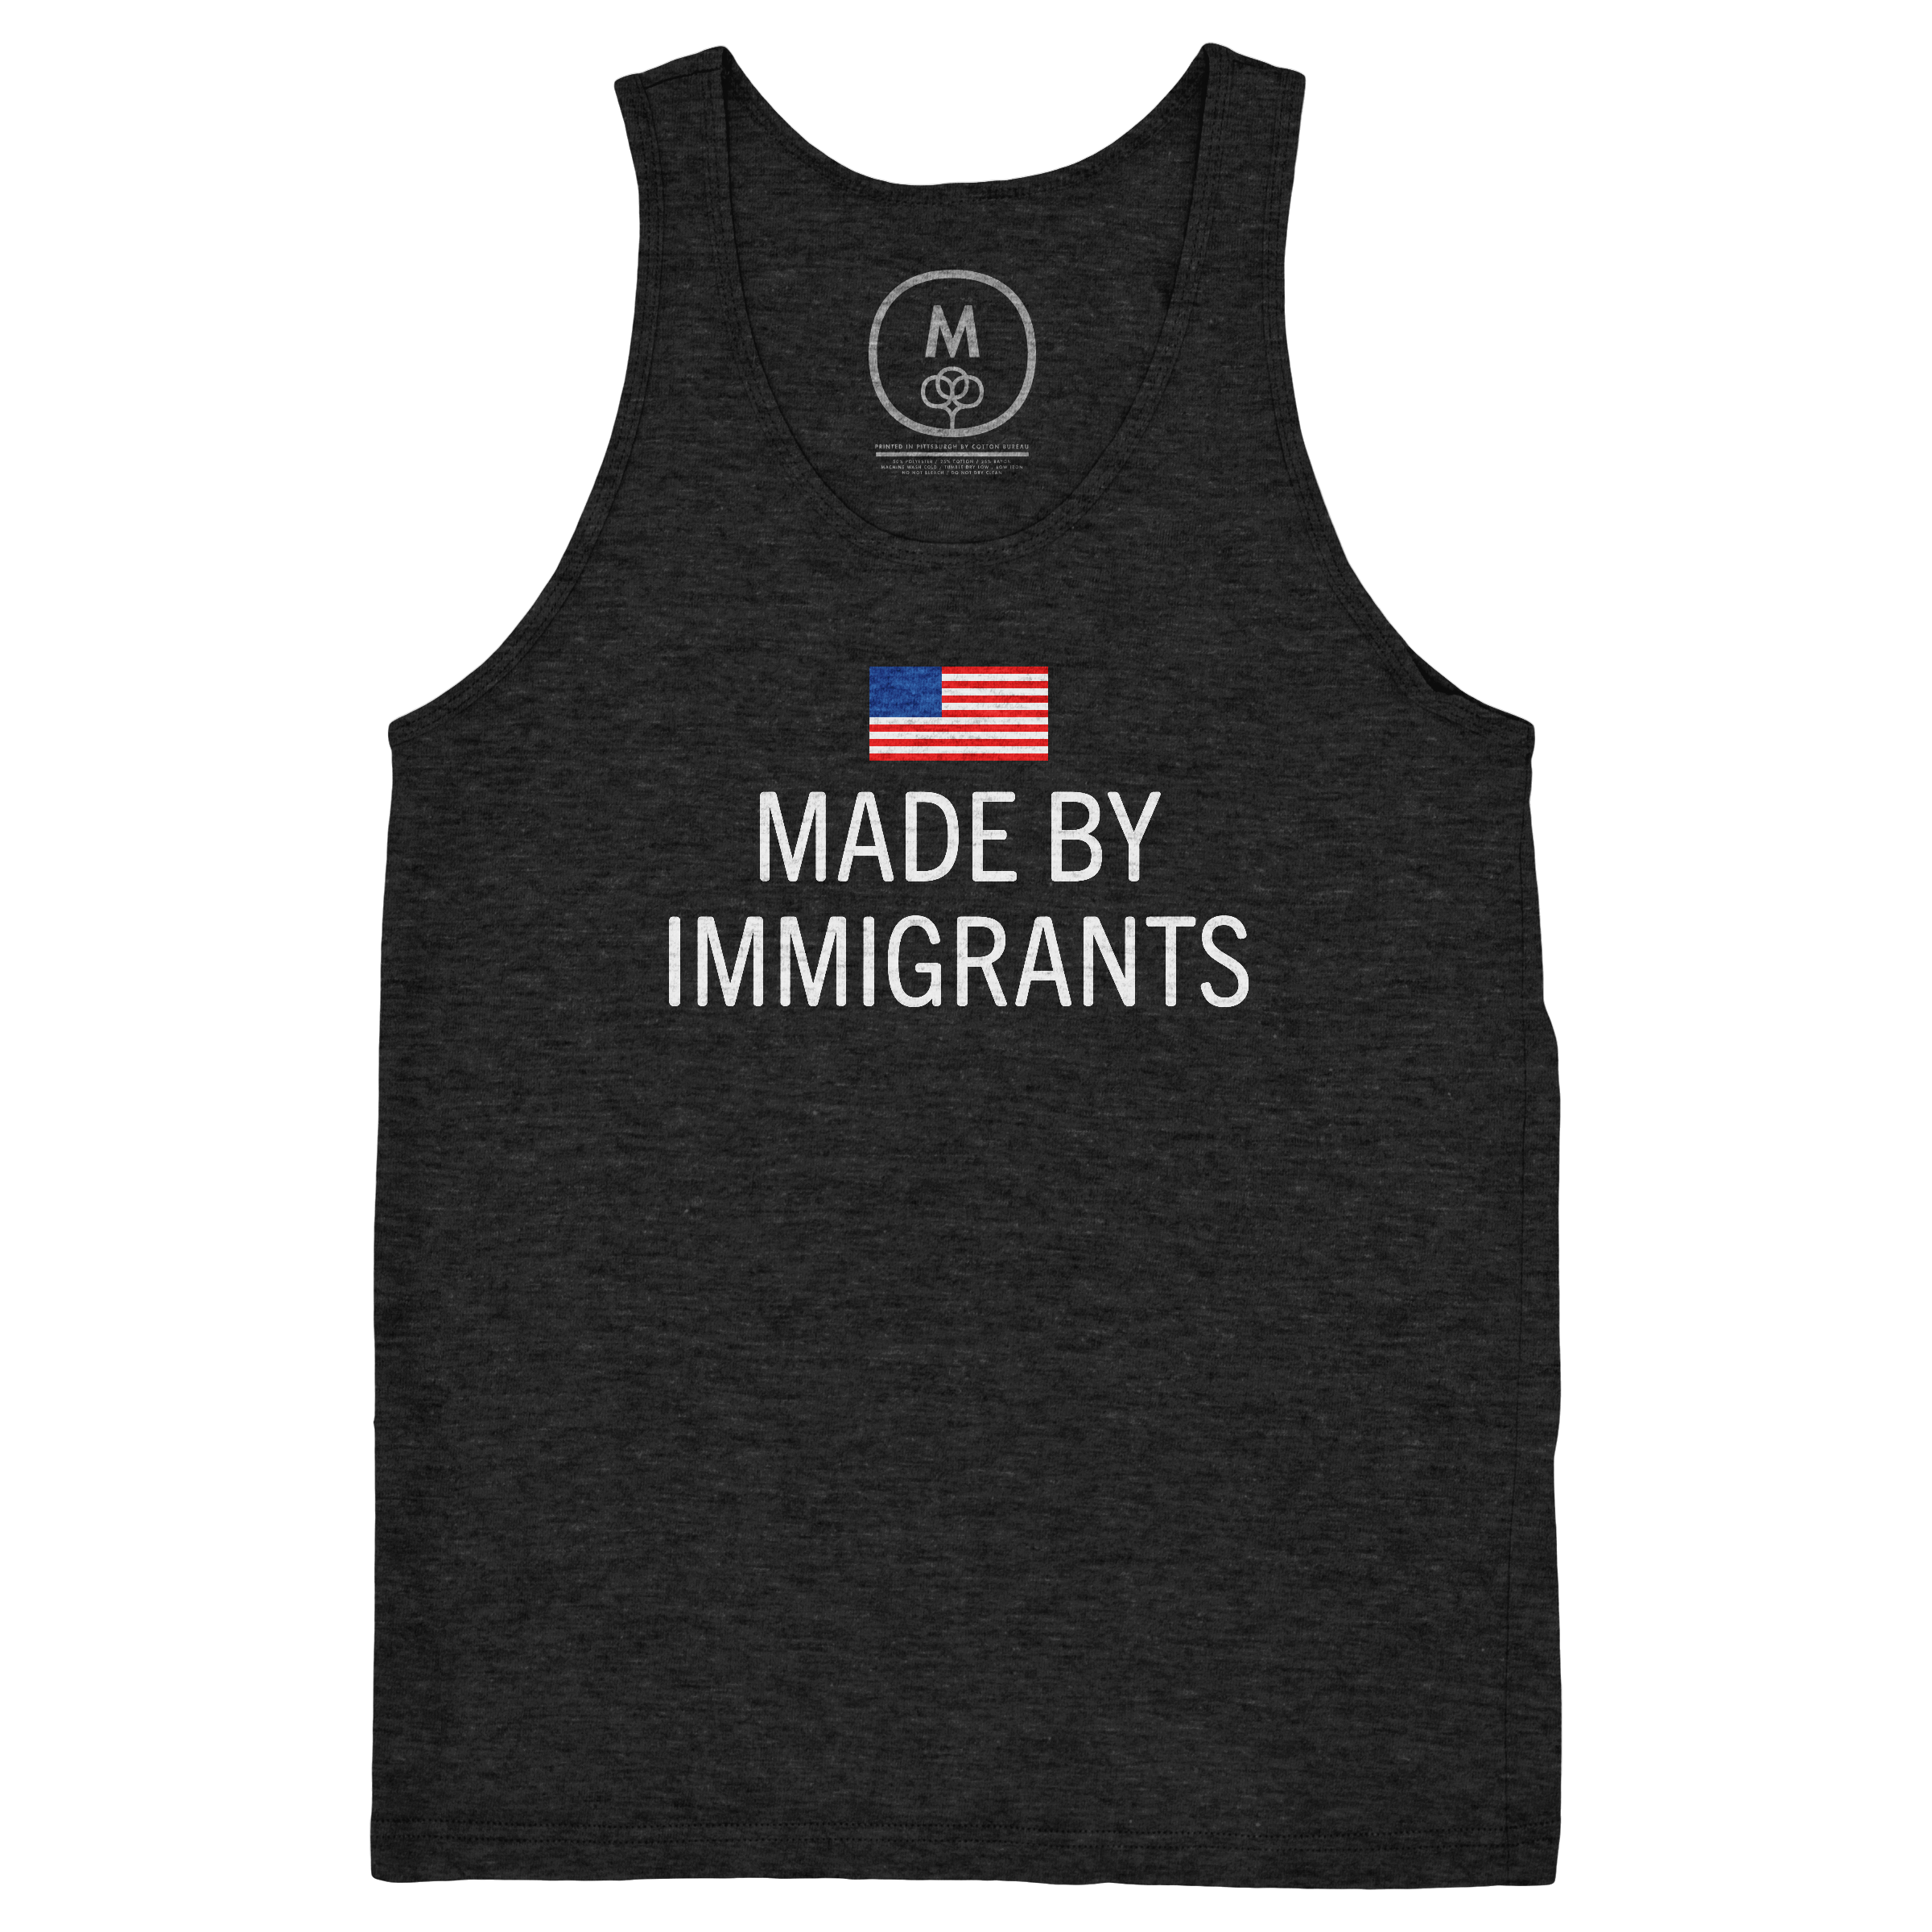 Made by immigrants. Tank Top